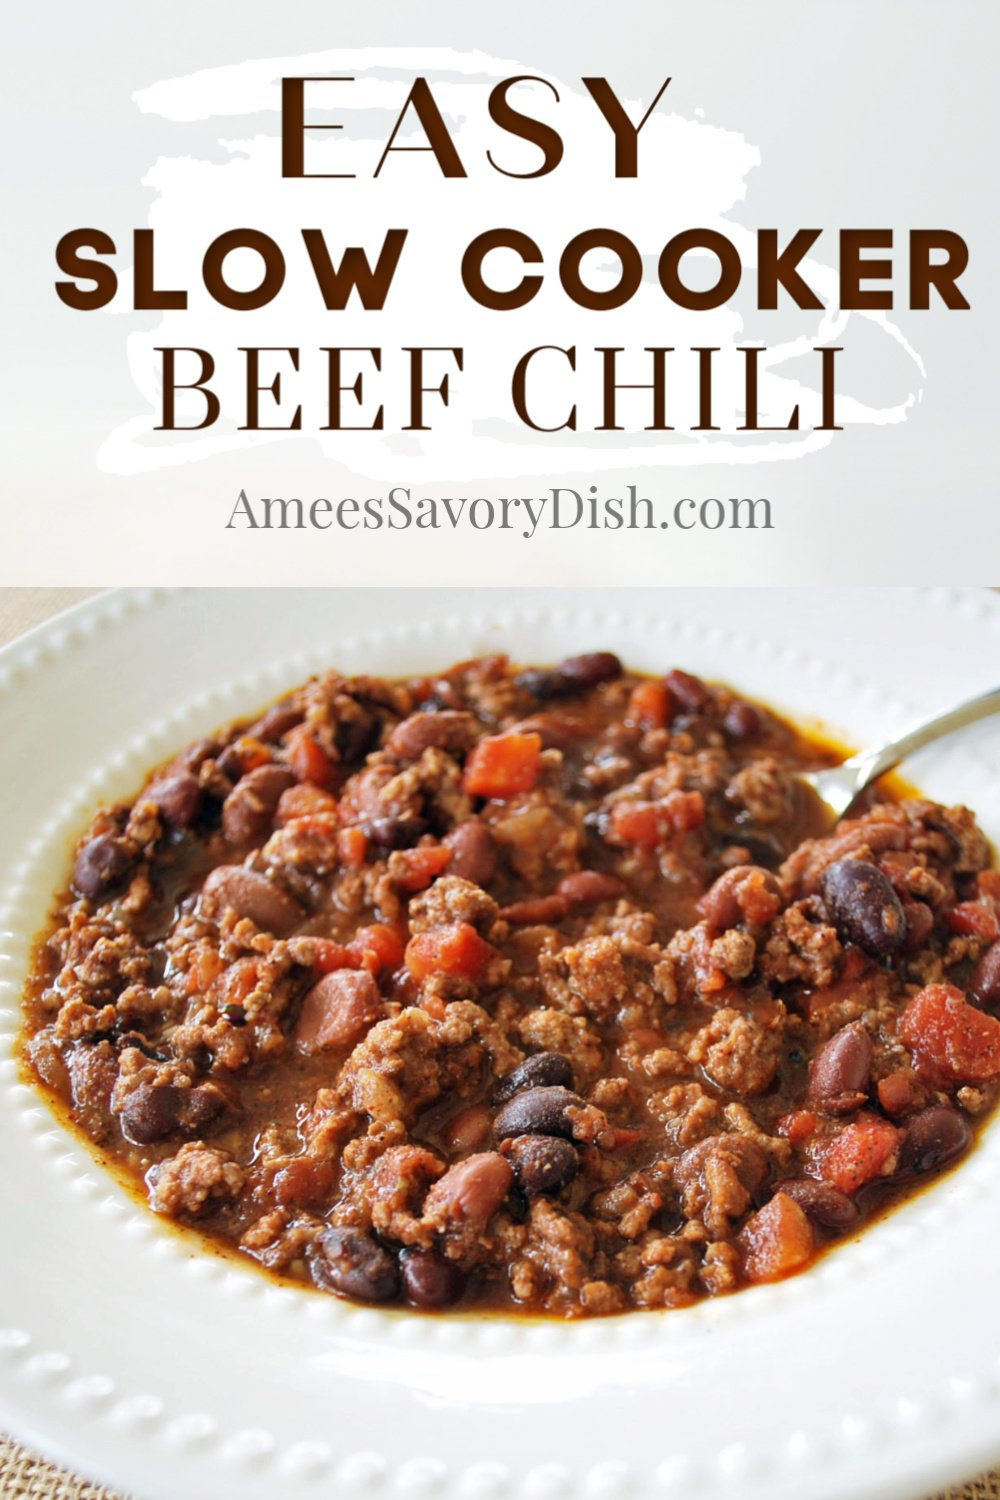 Slow cooker beef chili is a hearty, comfort food dinner recipe, made with lean ground beef and a blend of beans with tomatoes, onions, and spices. This great protein-packed recipe is so simple to throw together and cooks while you go about your day. #beefchili #slowcookerrecipe #slowcookerchili #chilirecipe via @Ameecooks